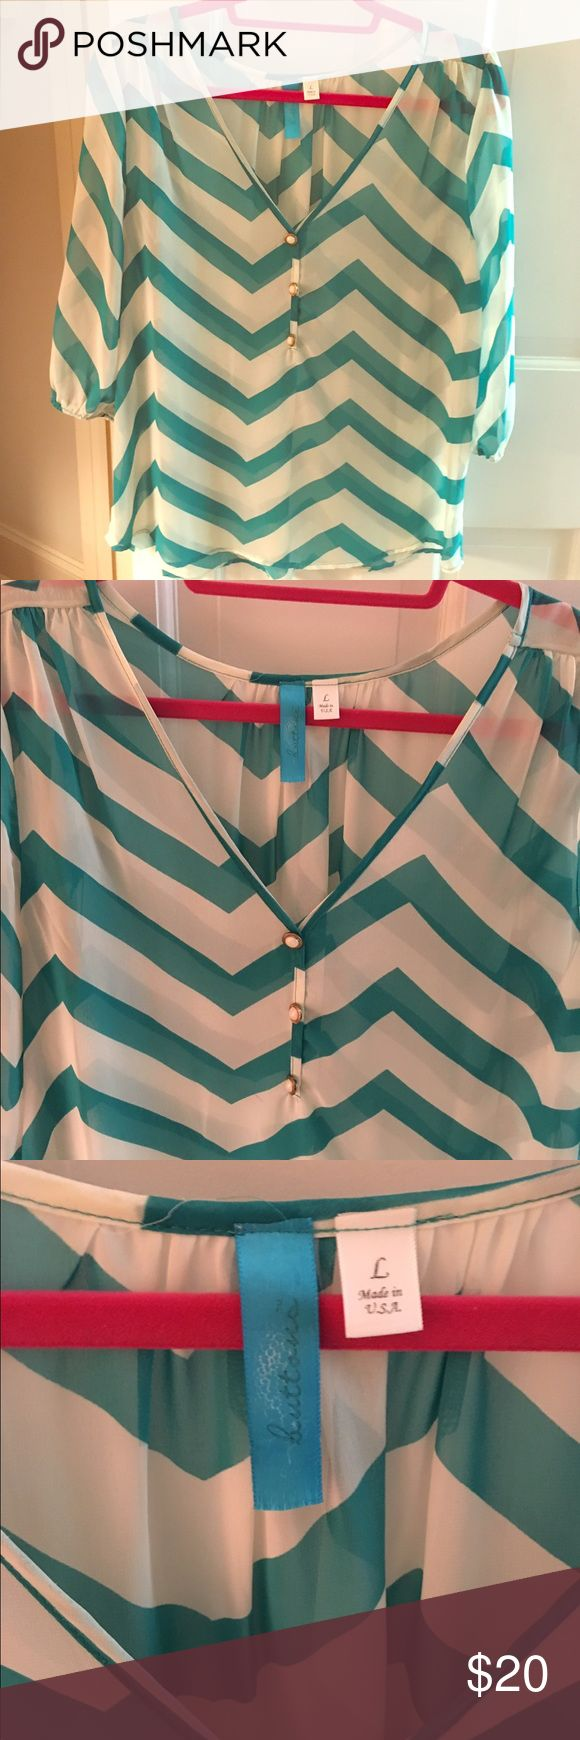 Teal and White Chevron Blouse Teal and white chevron blouse in size large; see-through so a cami underneath is needed. Tops Blouses